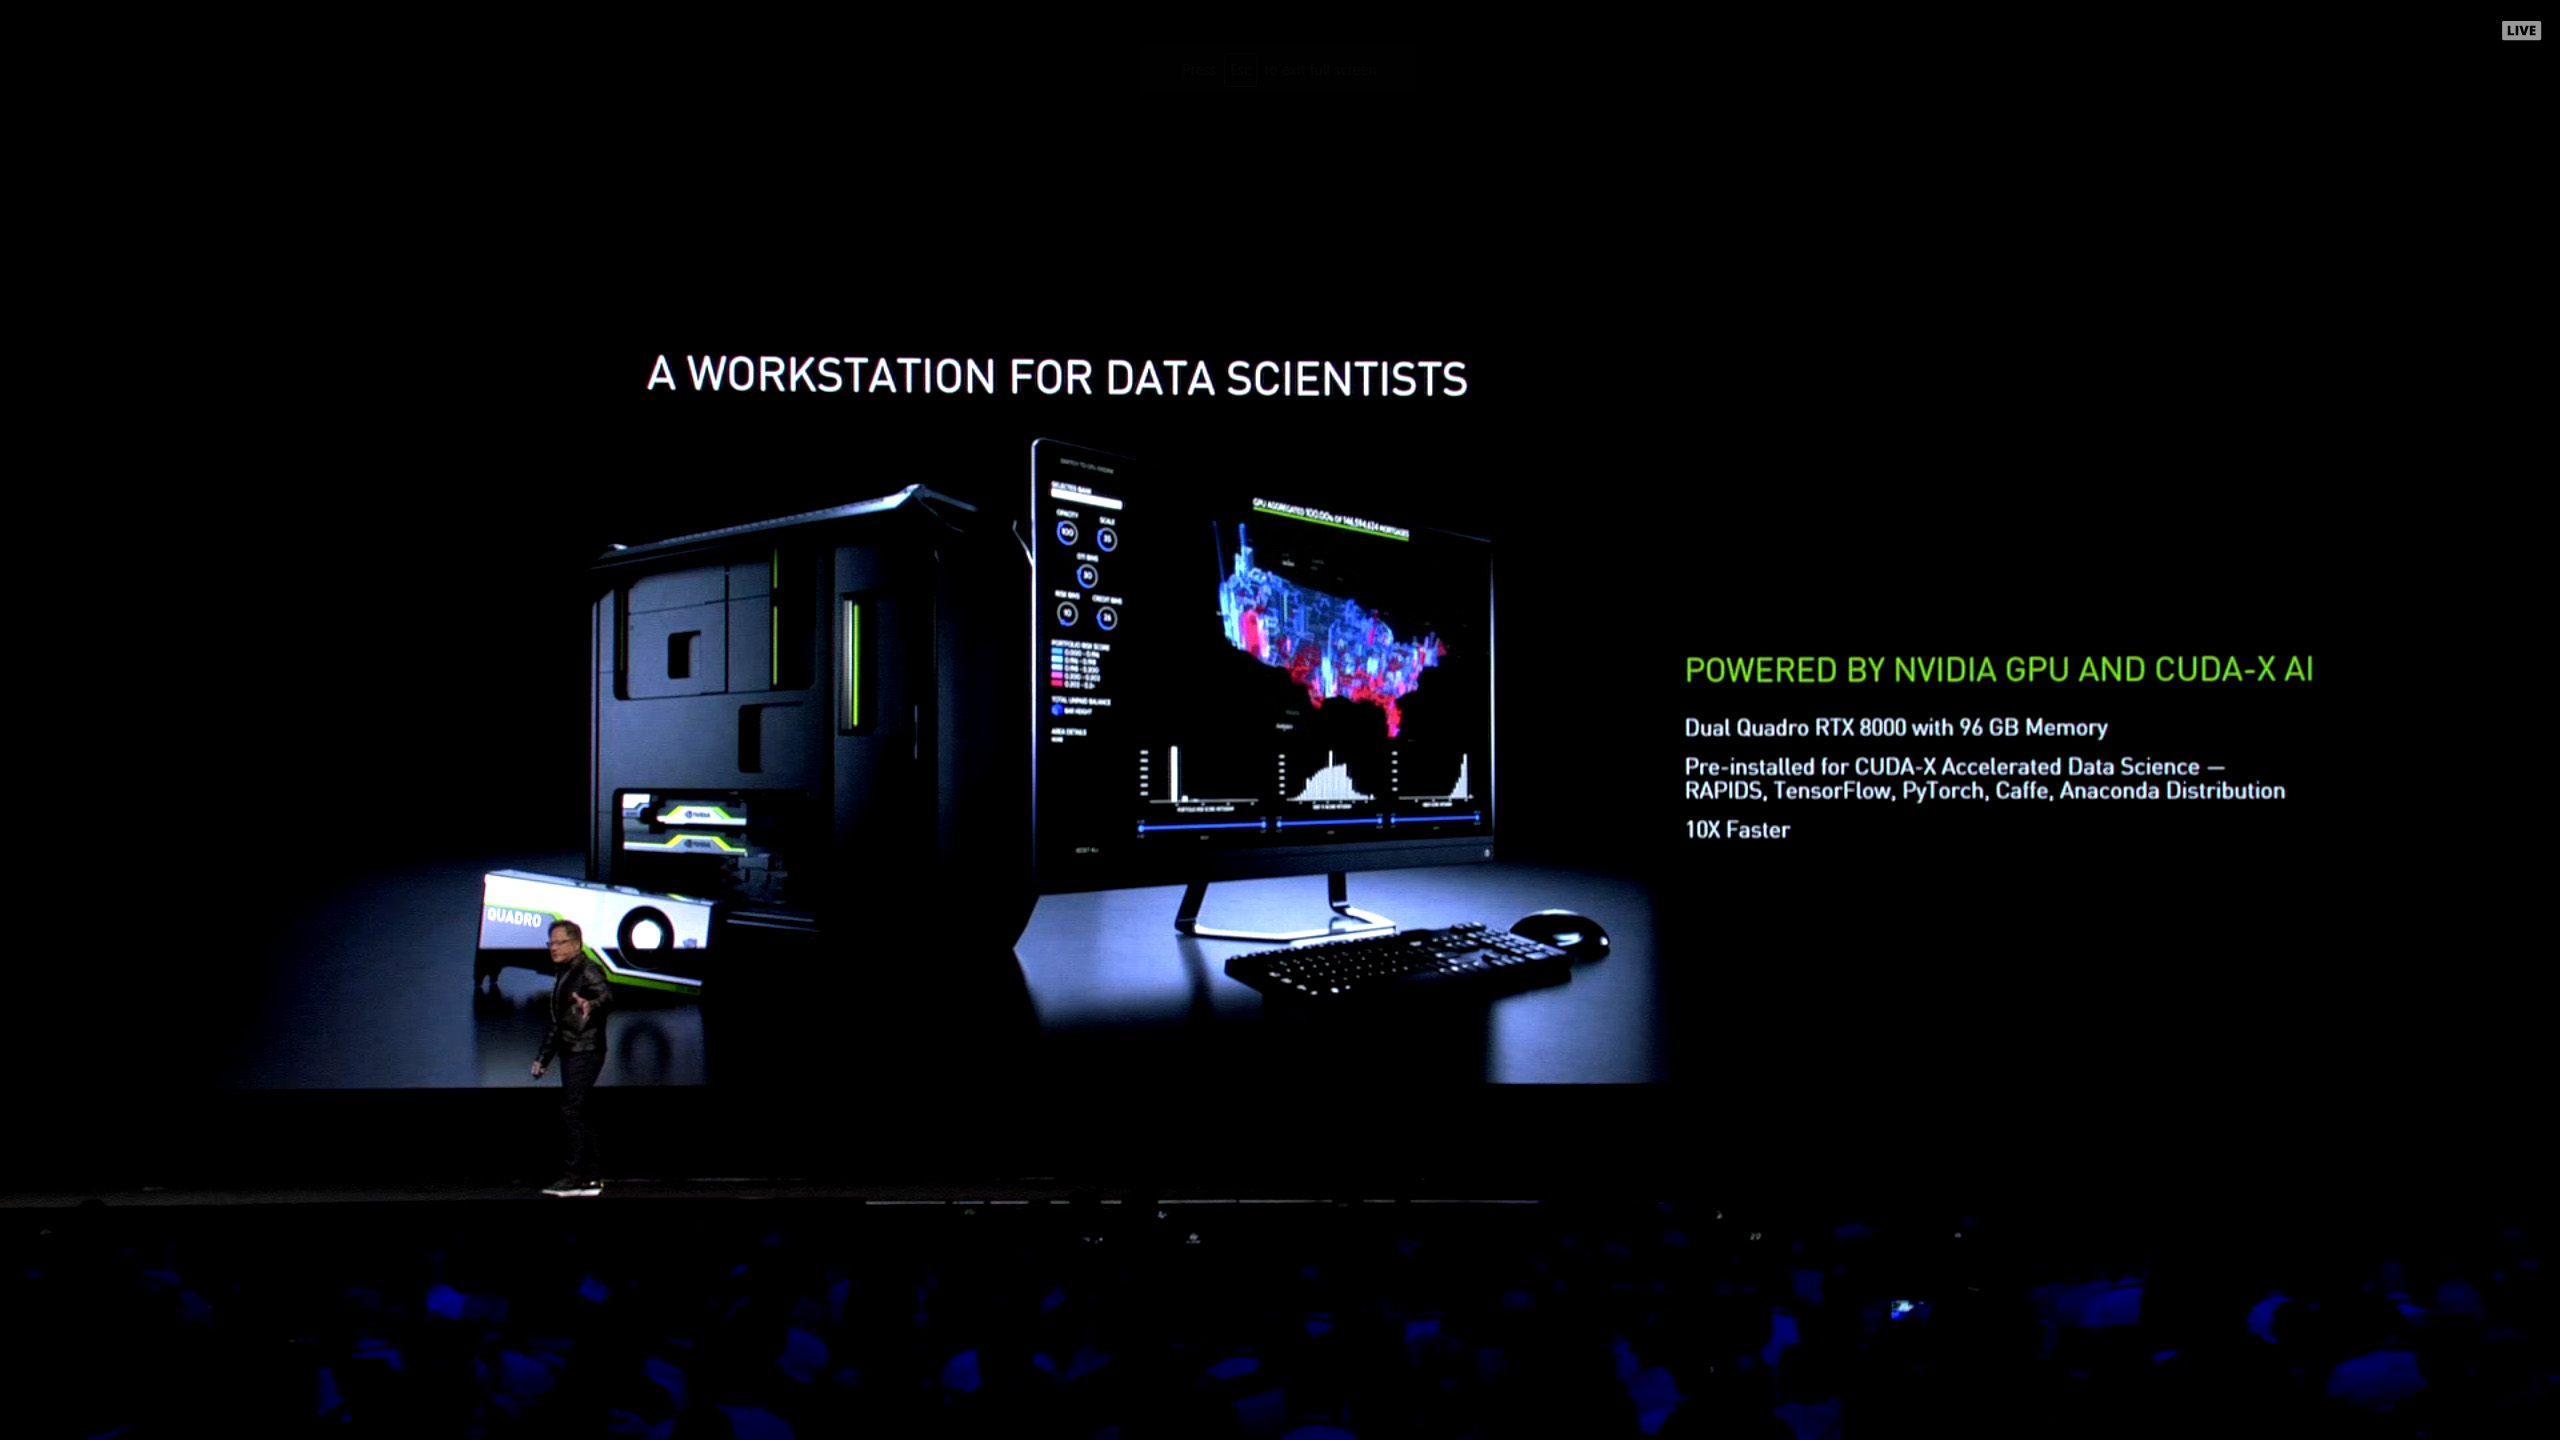 NVIDIA GTC 2019: RTX Servers, Omniverse Collaboration, CUDA-X AI